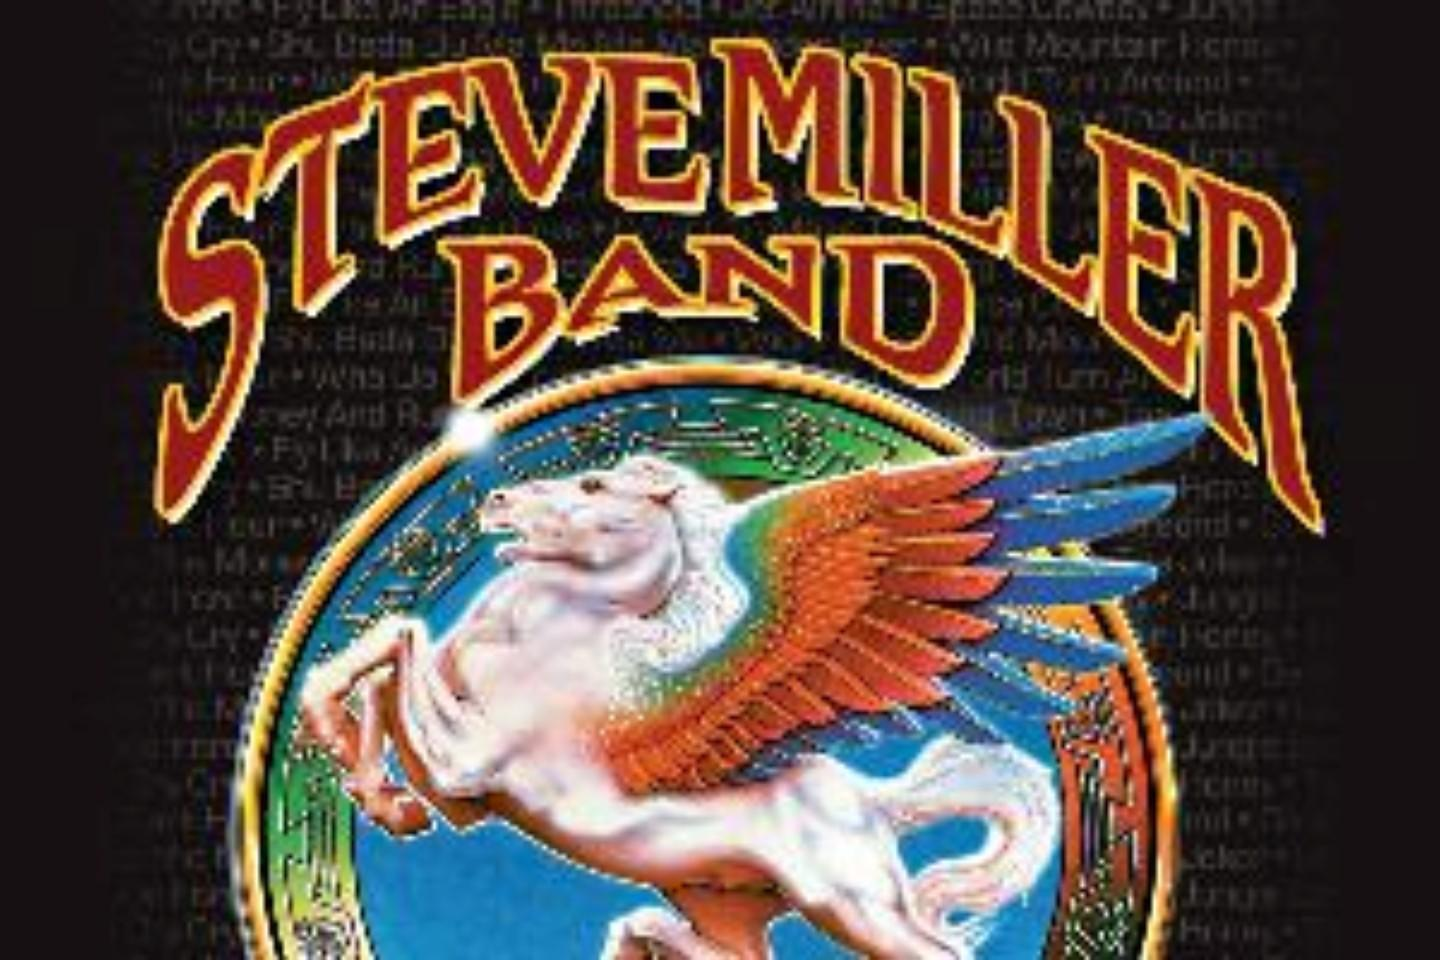 Steve Miller Band Tour 2020.Steve Miller Band Tickets Steve Miller Band Tour Dates